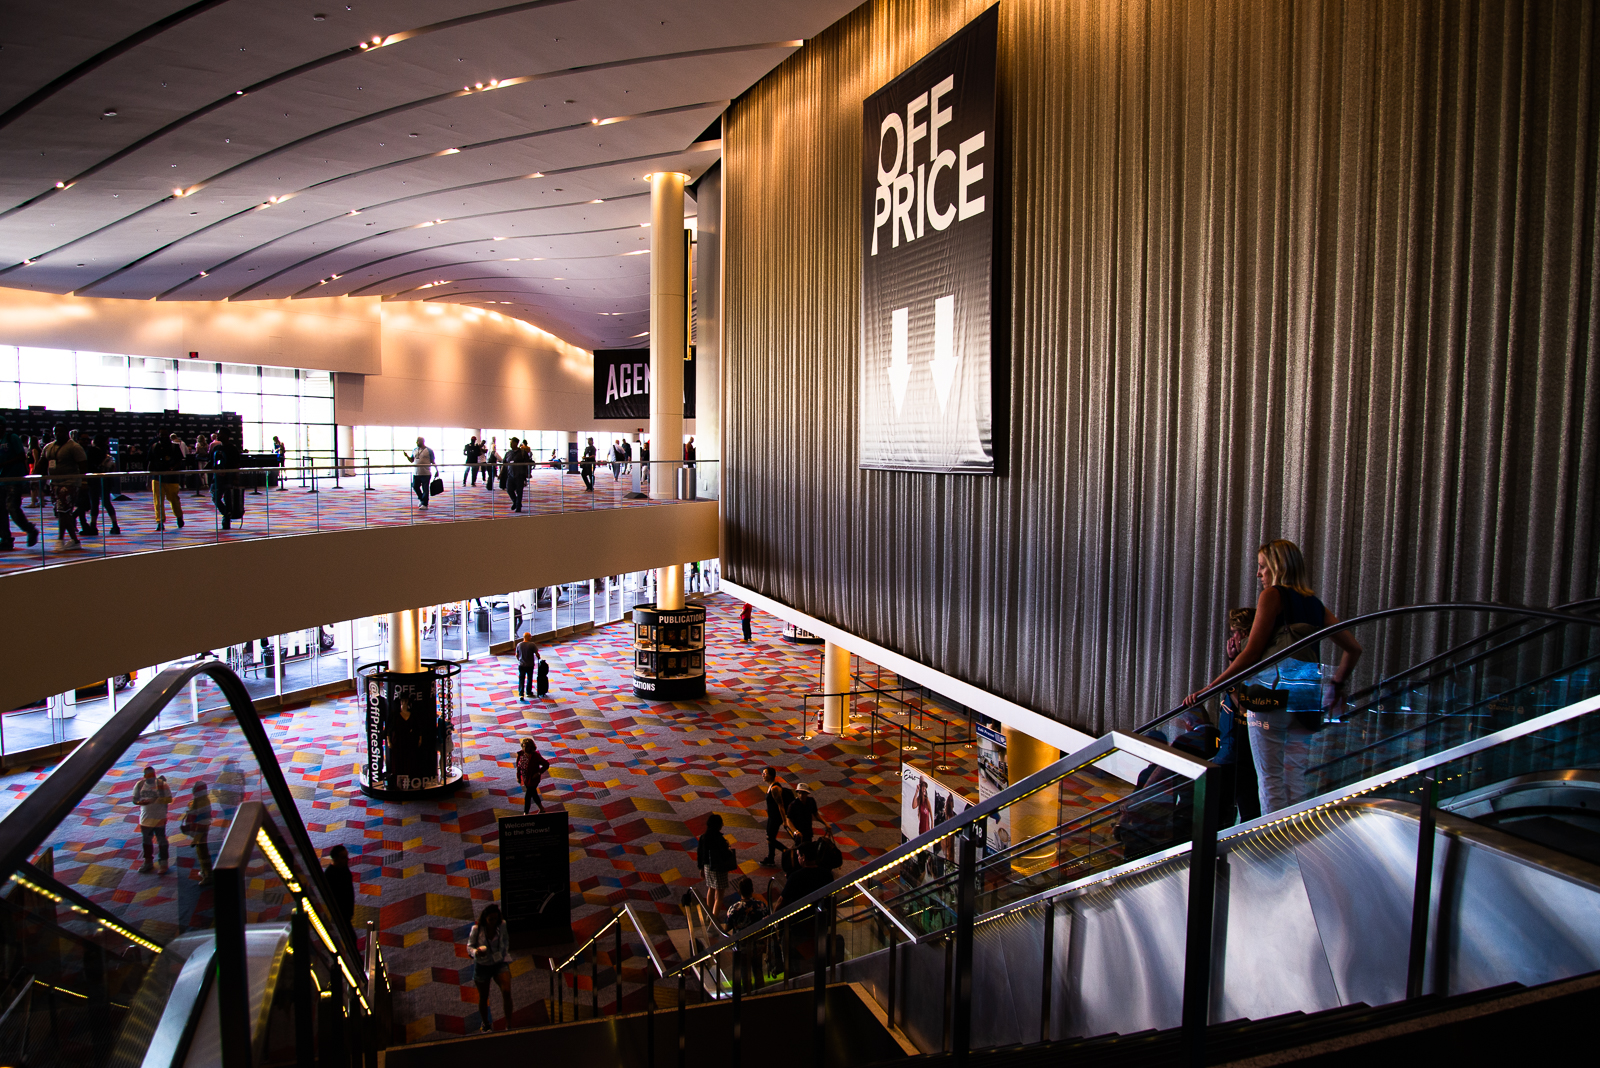 OffPrice at Sands Convention Center, Las Vegas